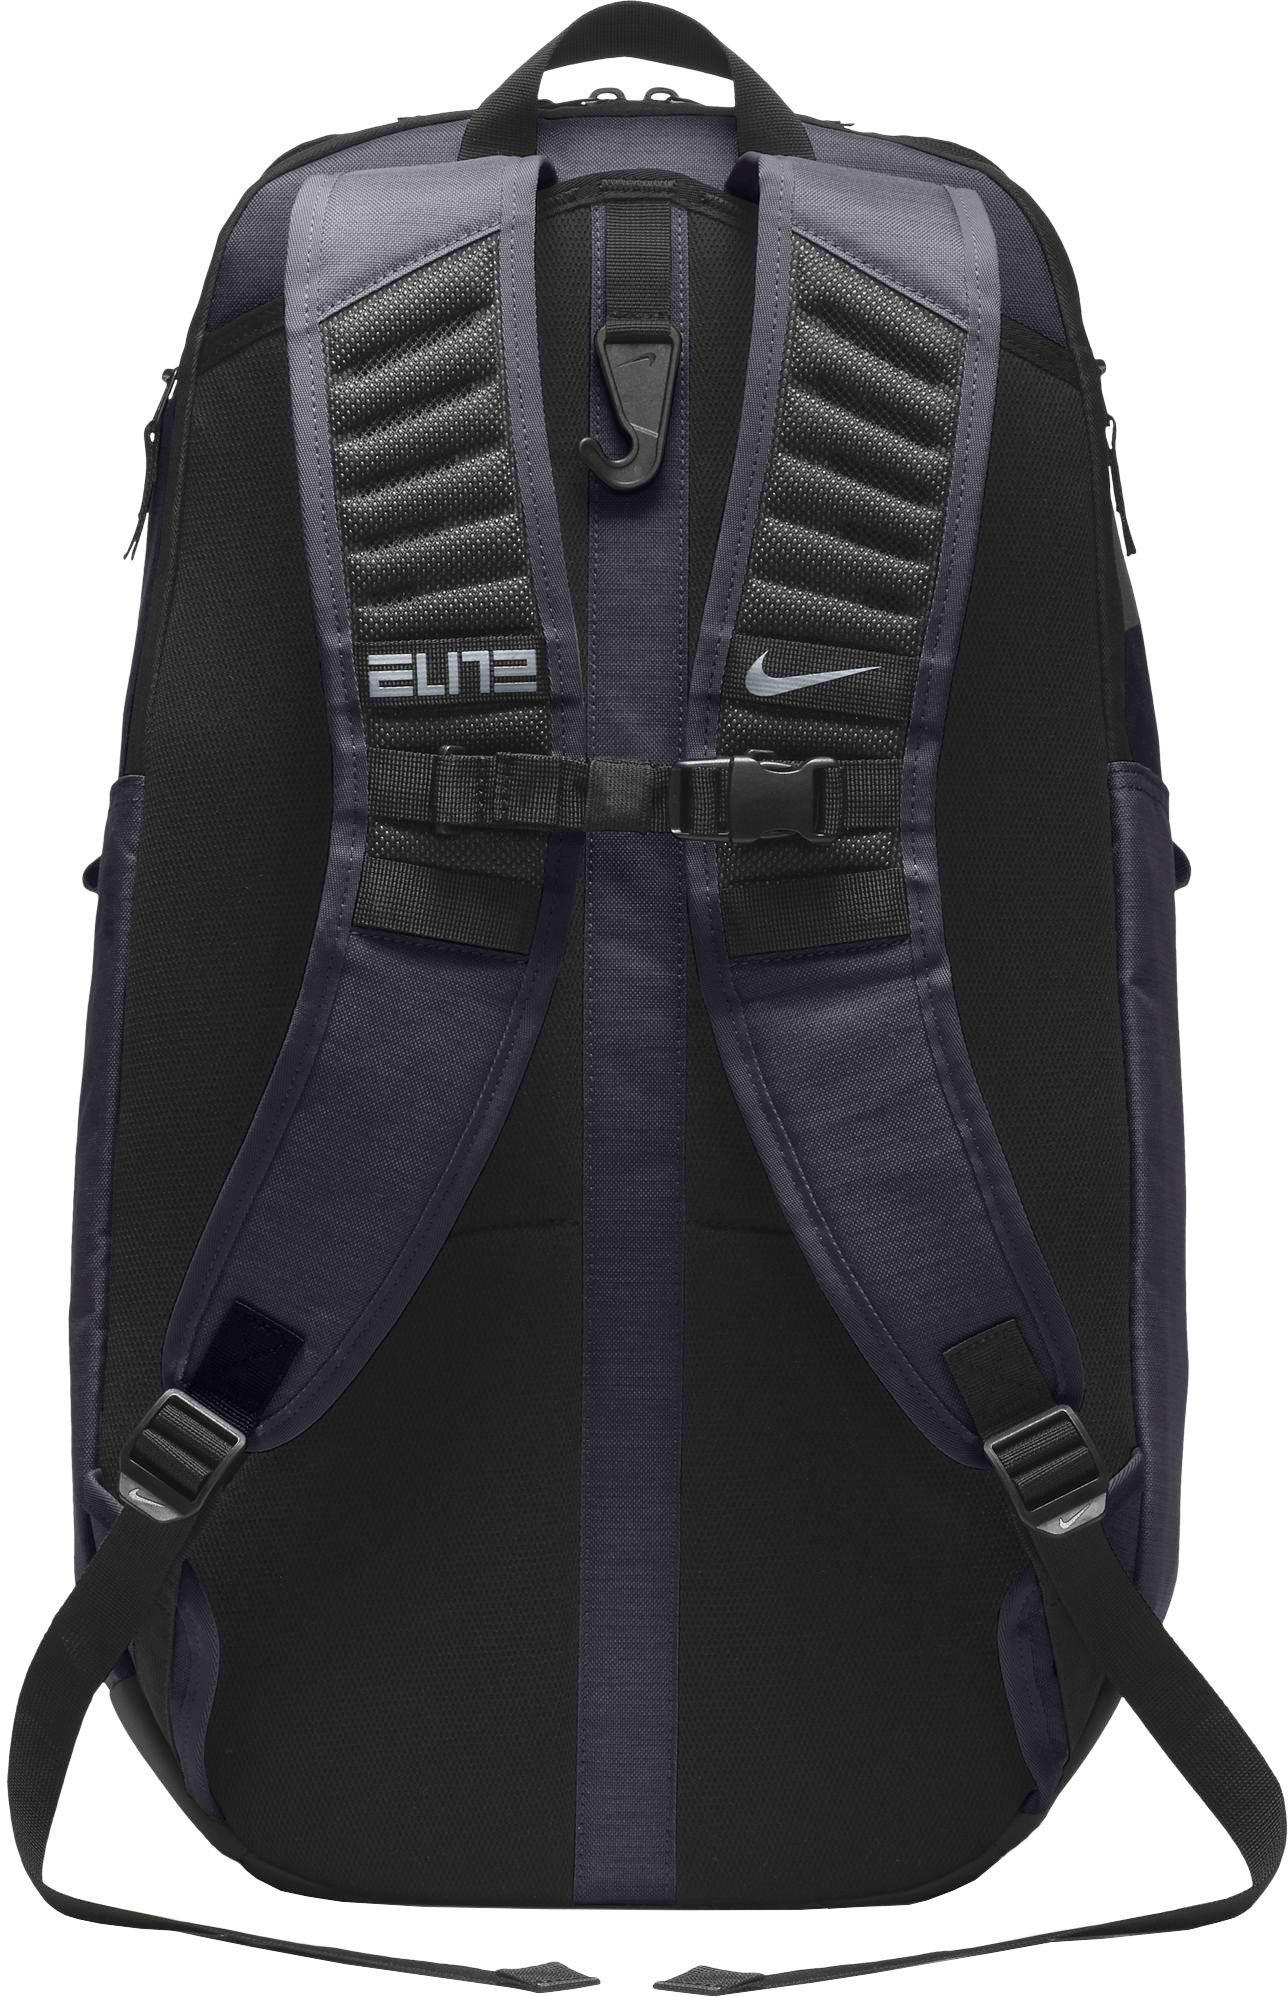 bdfcd991b2 Nike - Multicolor Hoops Elite Pro Basketball Backpack for Men - Lyst